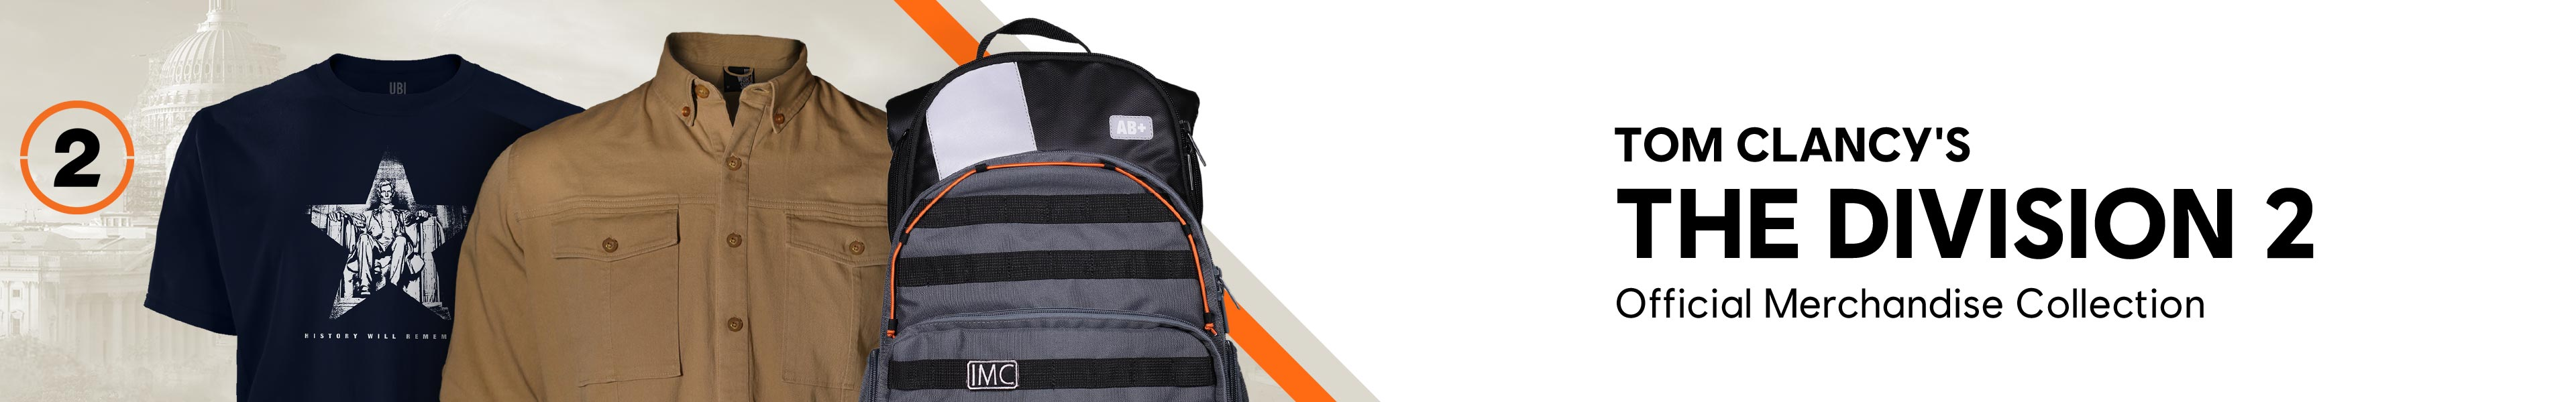 The Division 2 Merch New Banner